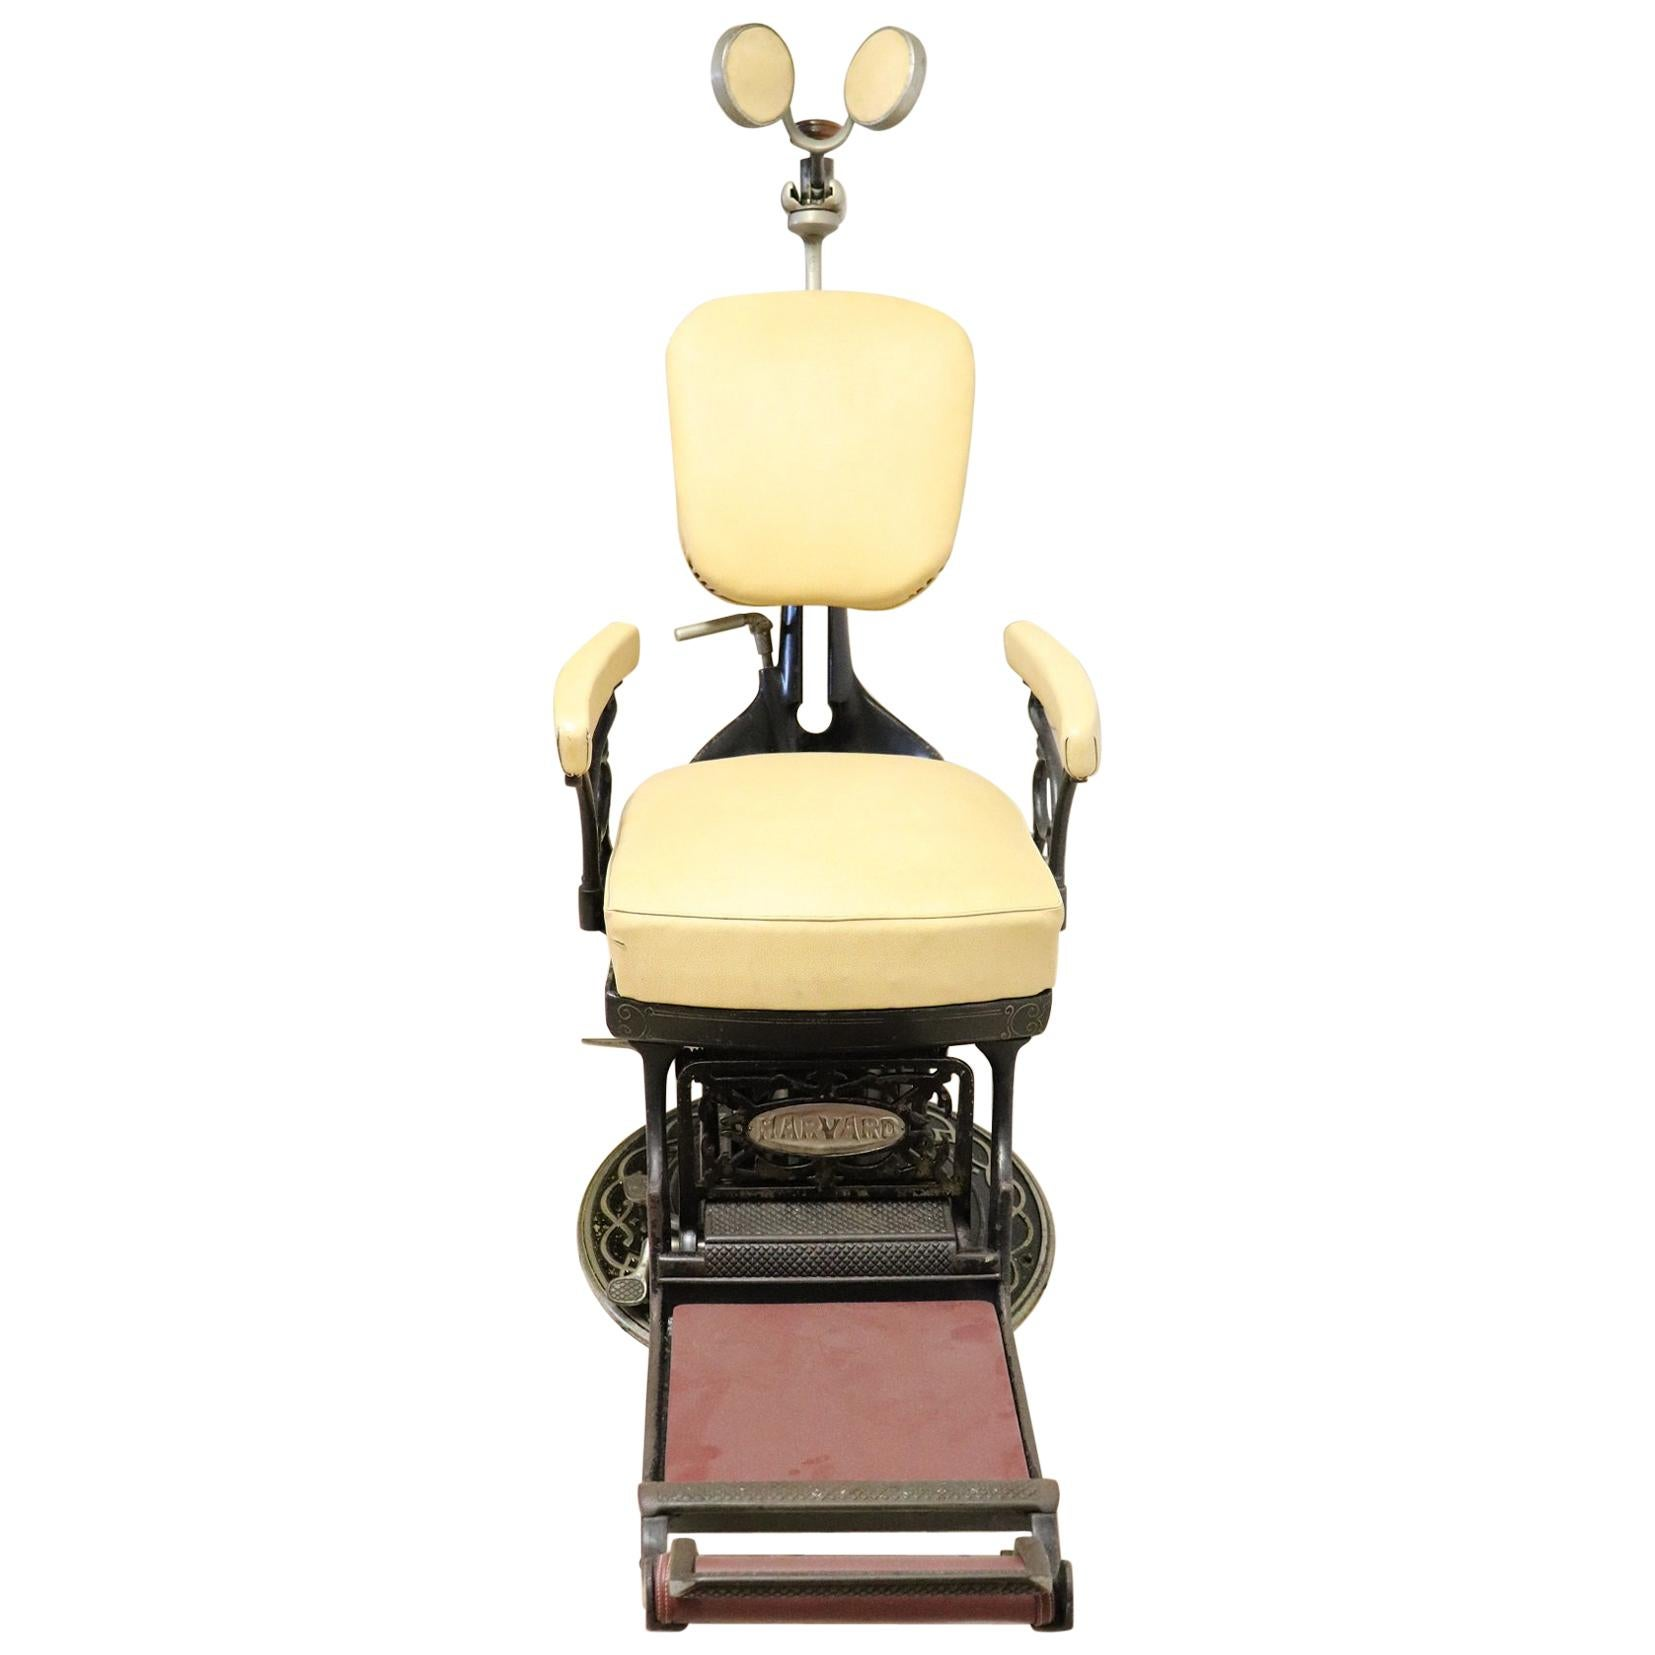 Vintage Dentist Chair in Decorative Iron and Leather by Harvard, 1910s